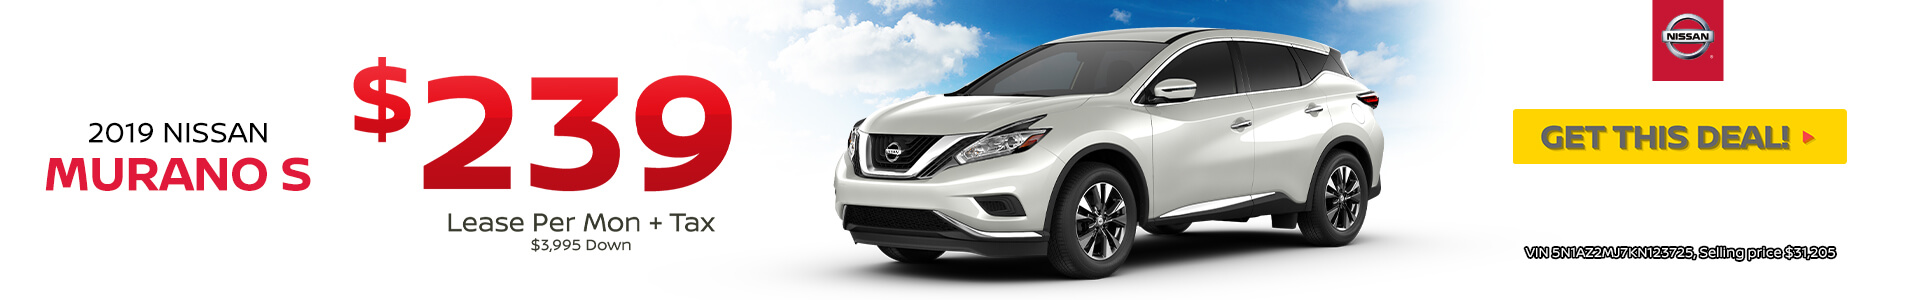 2019 Nissan Murano Lease $239